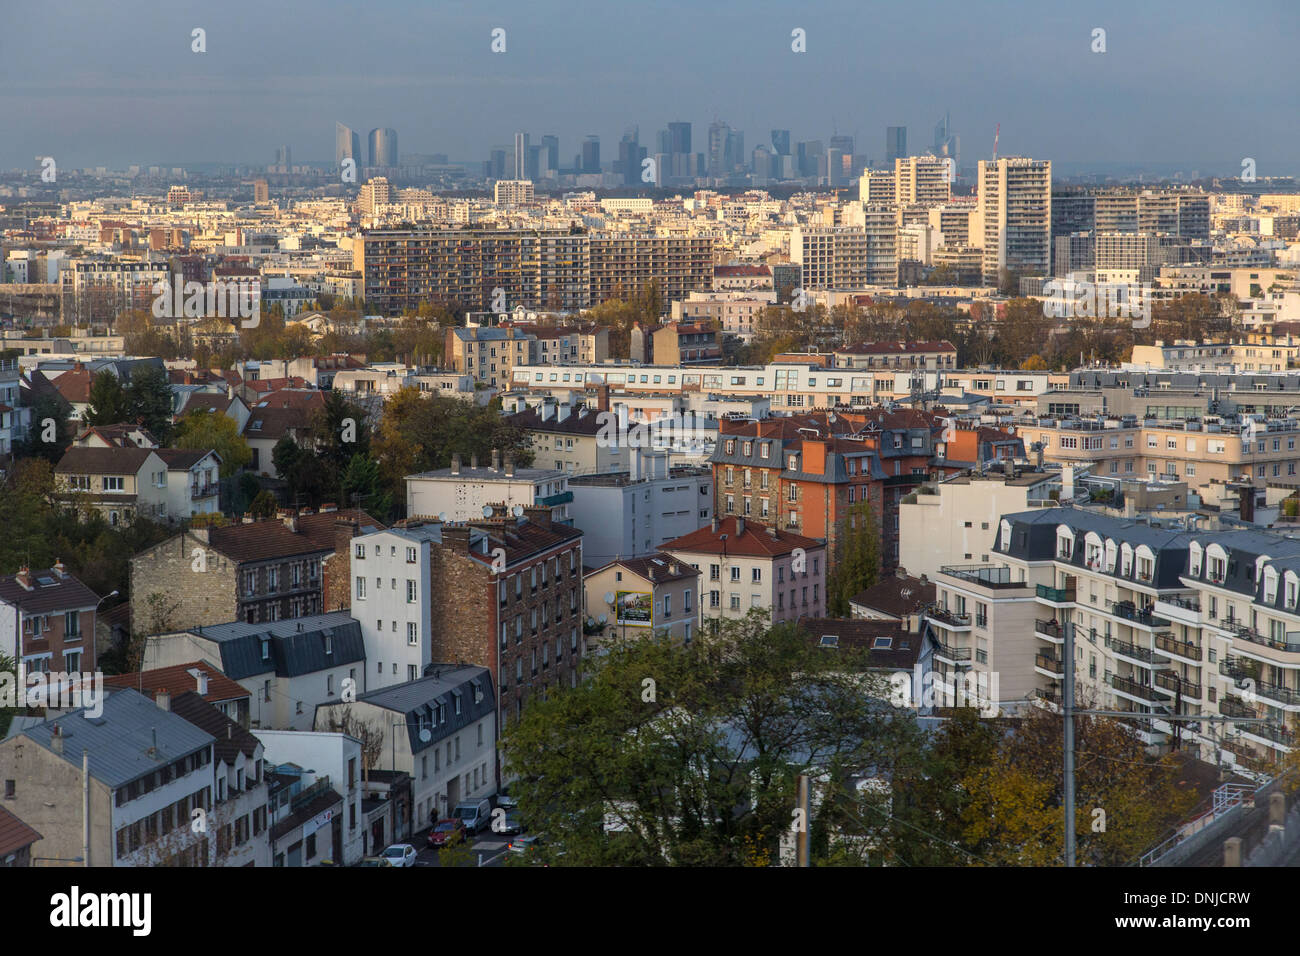 the western suburbs of paris with the cities of meudon sevres stock photo royalty free image. Black Bedroom Furniture Sets. Home Design Ideas